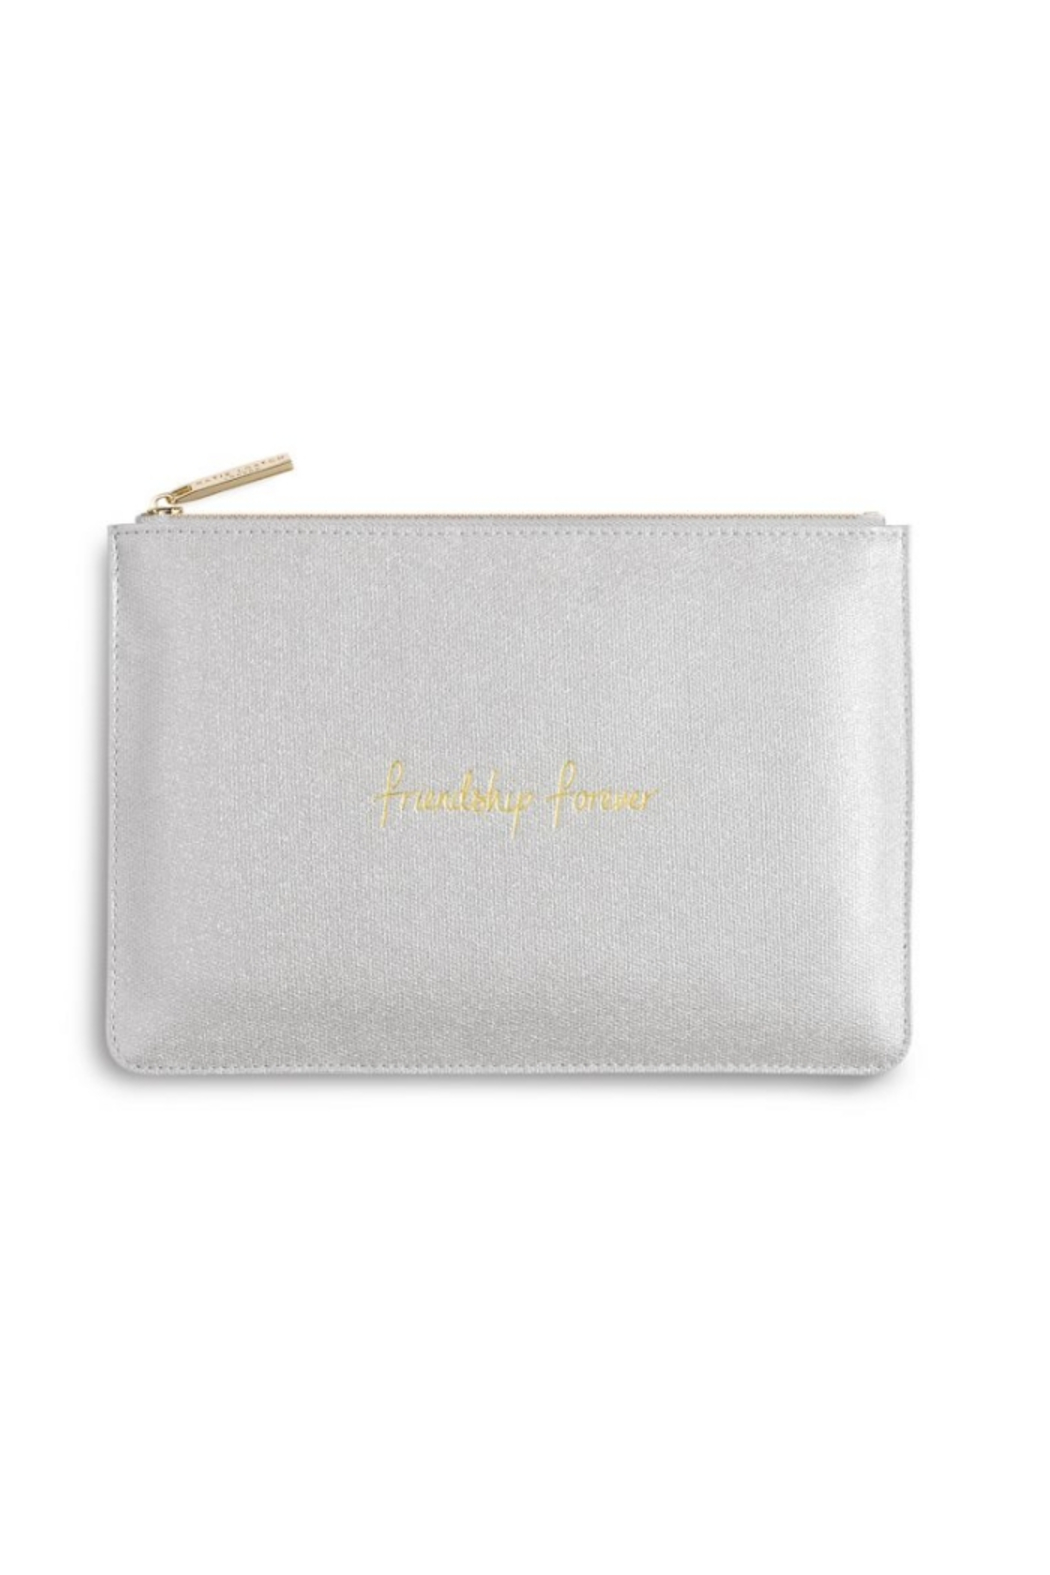 Katie Loxton Friendship Forever Perfect Pouch - Main Image